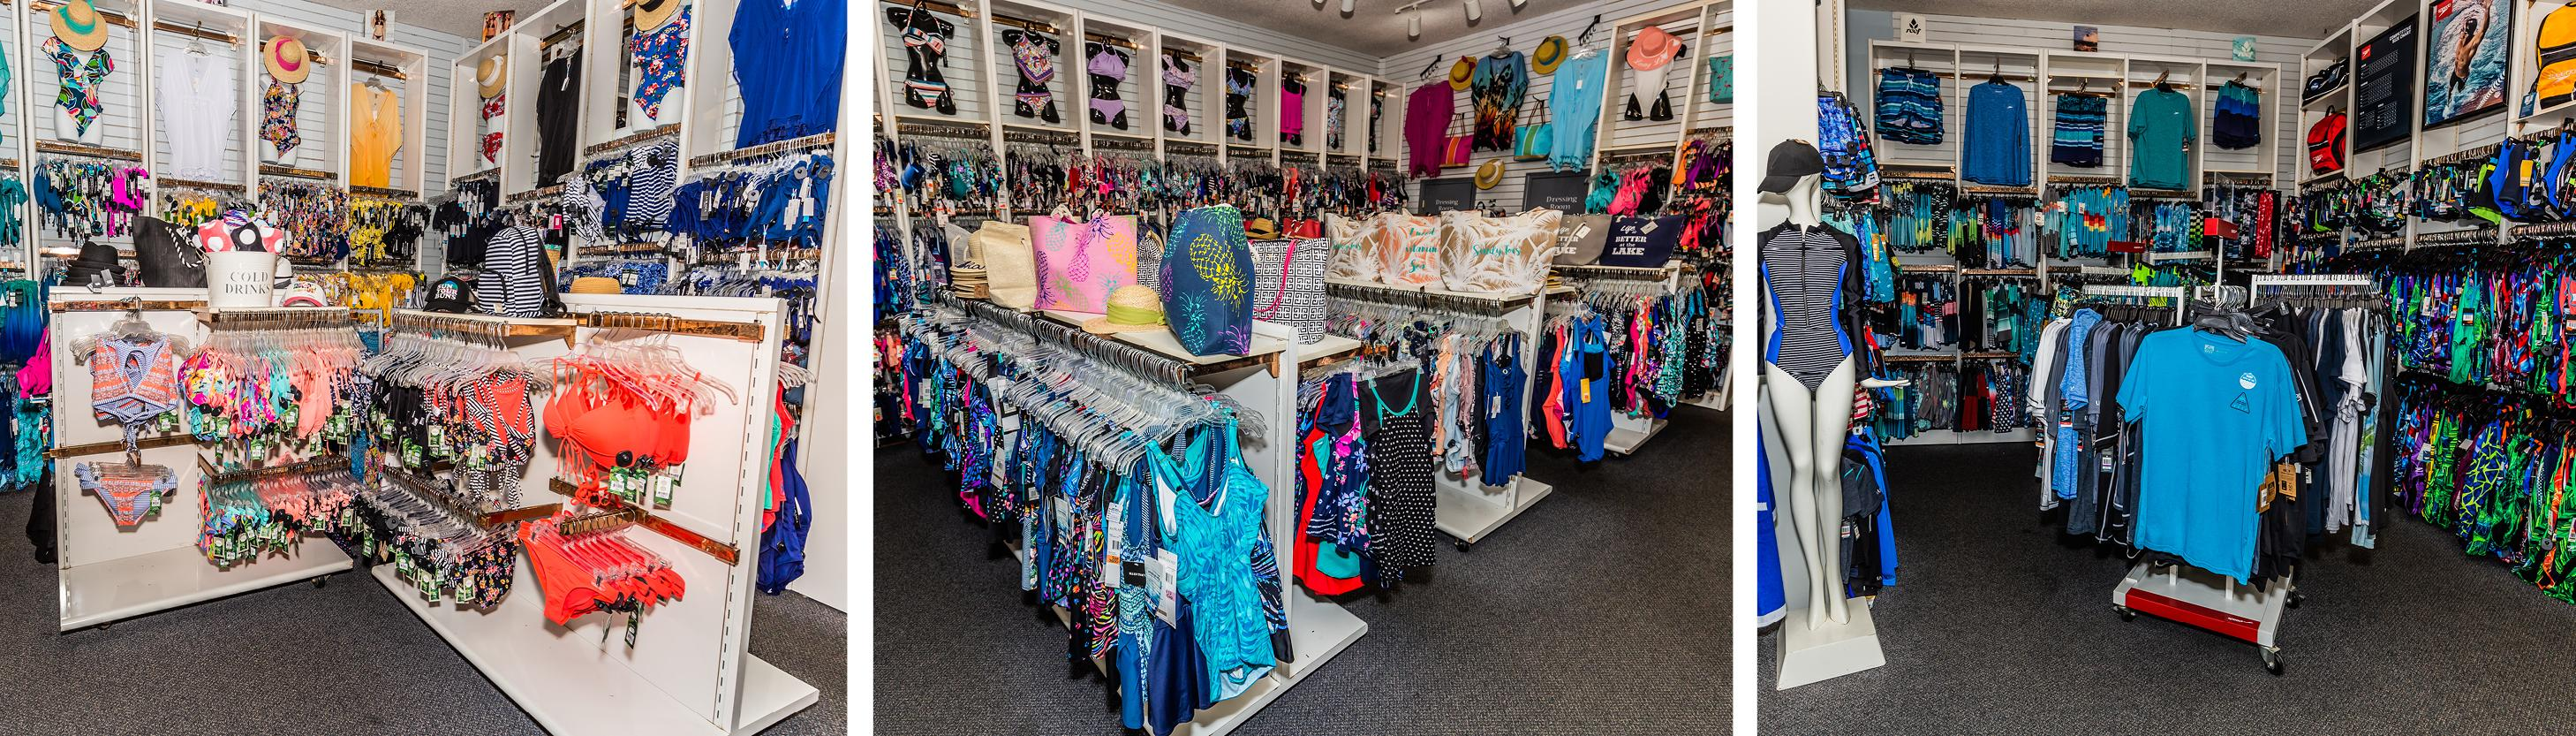 d8ad3bbd97 Largest selection of swimsuits and swimwear in Kansas City | Swim Things